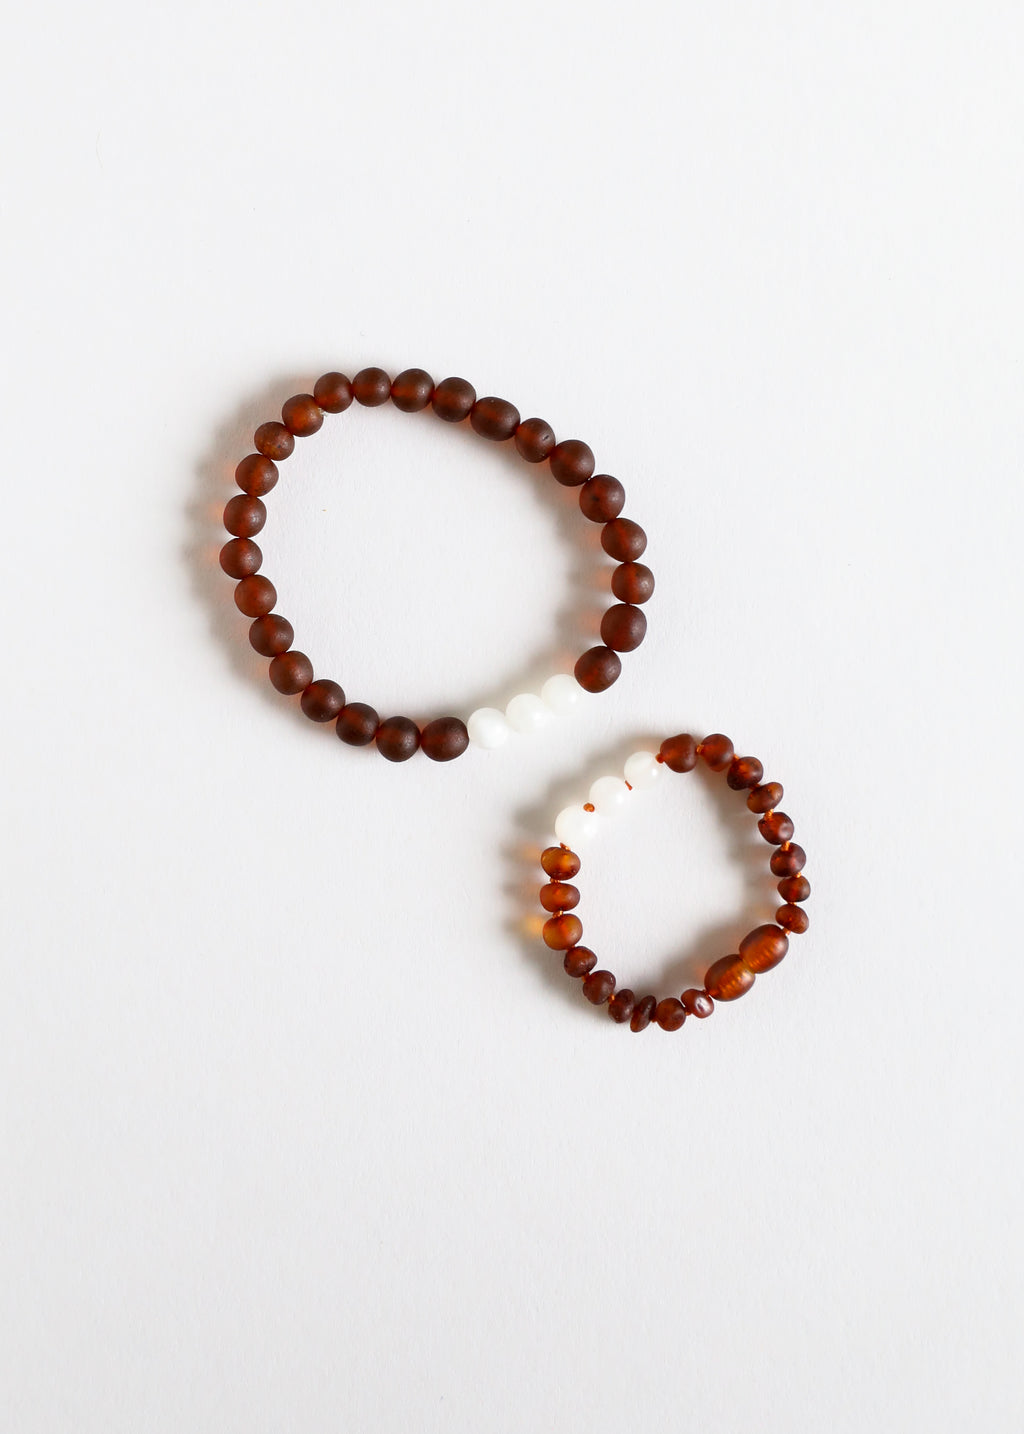 Raw Cognac Amber + Moonstone || Mommy & Me || Bracelets